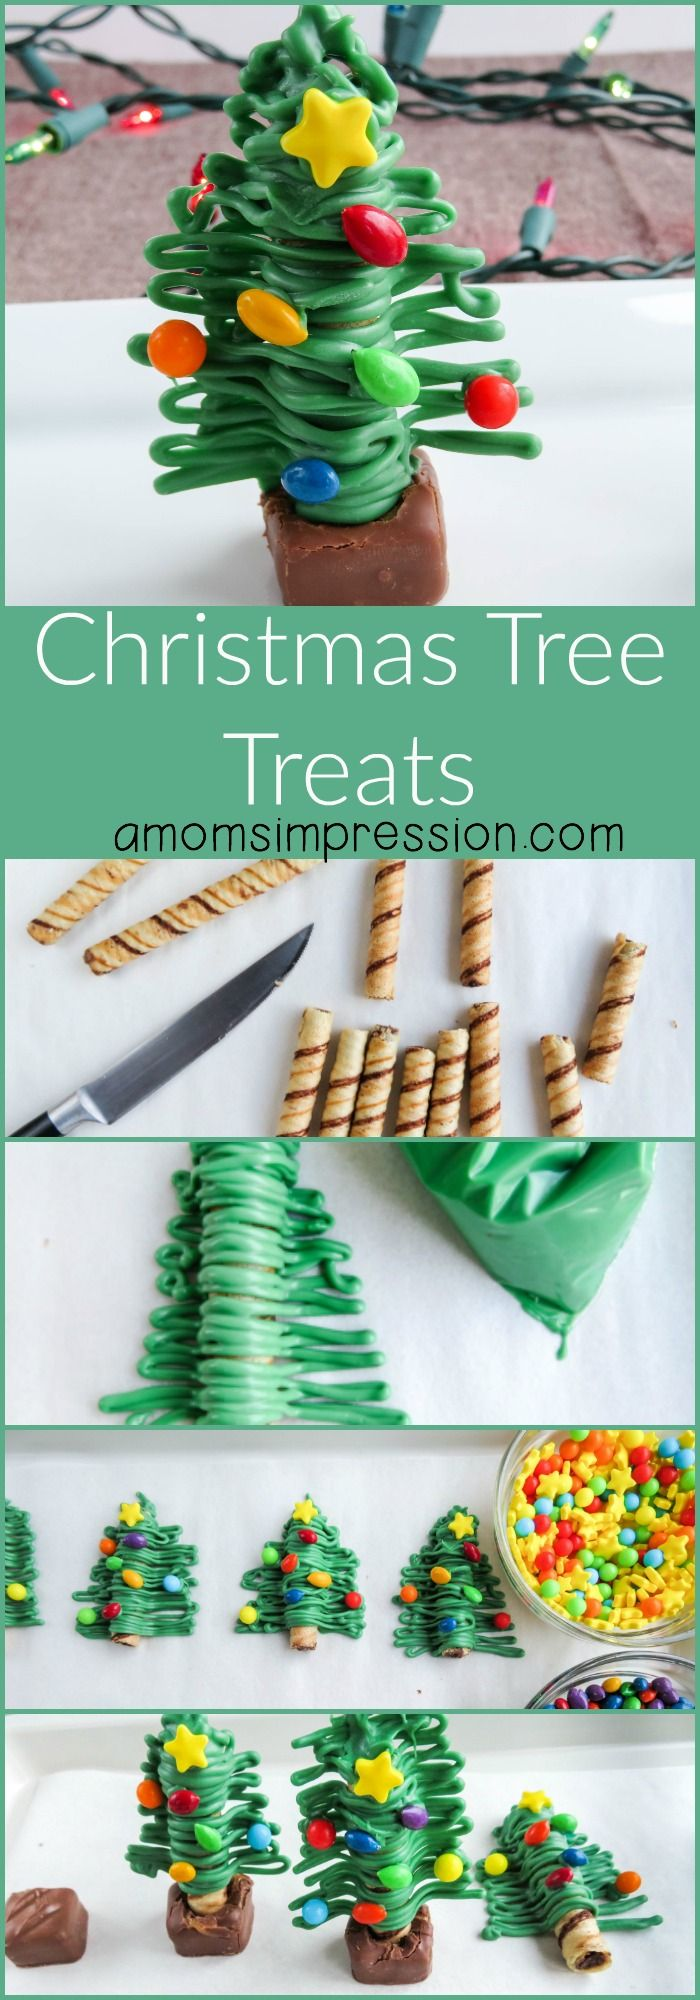 Simple and easy Christmas Tree treats made out of a cookie, icing and a small candy bar. Perfect gifts for teachers and neighbors this holiday season.